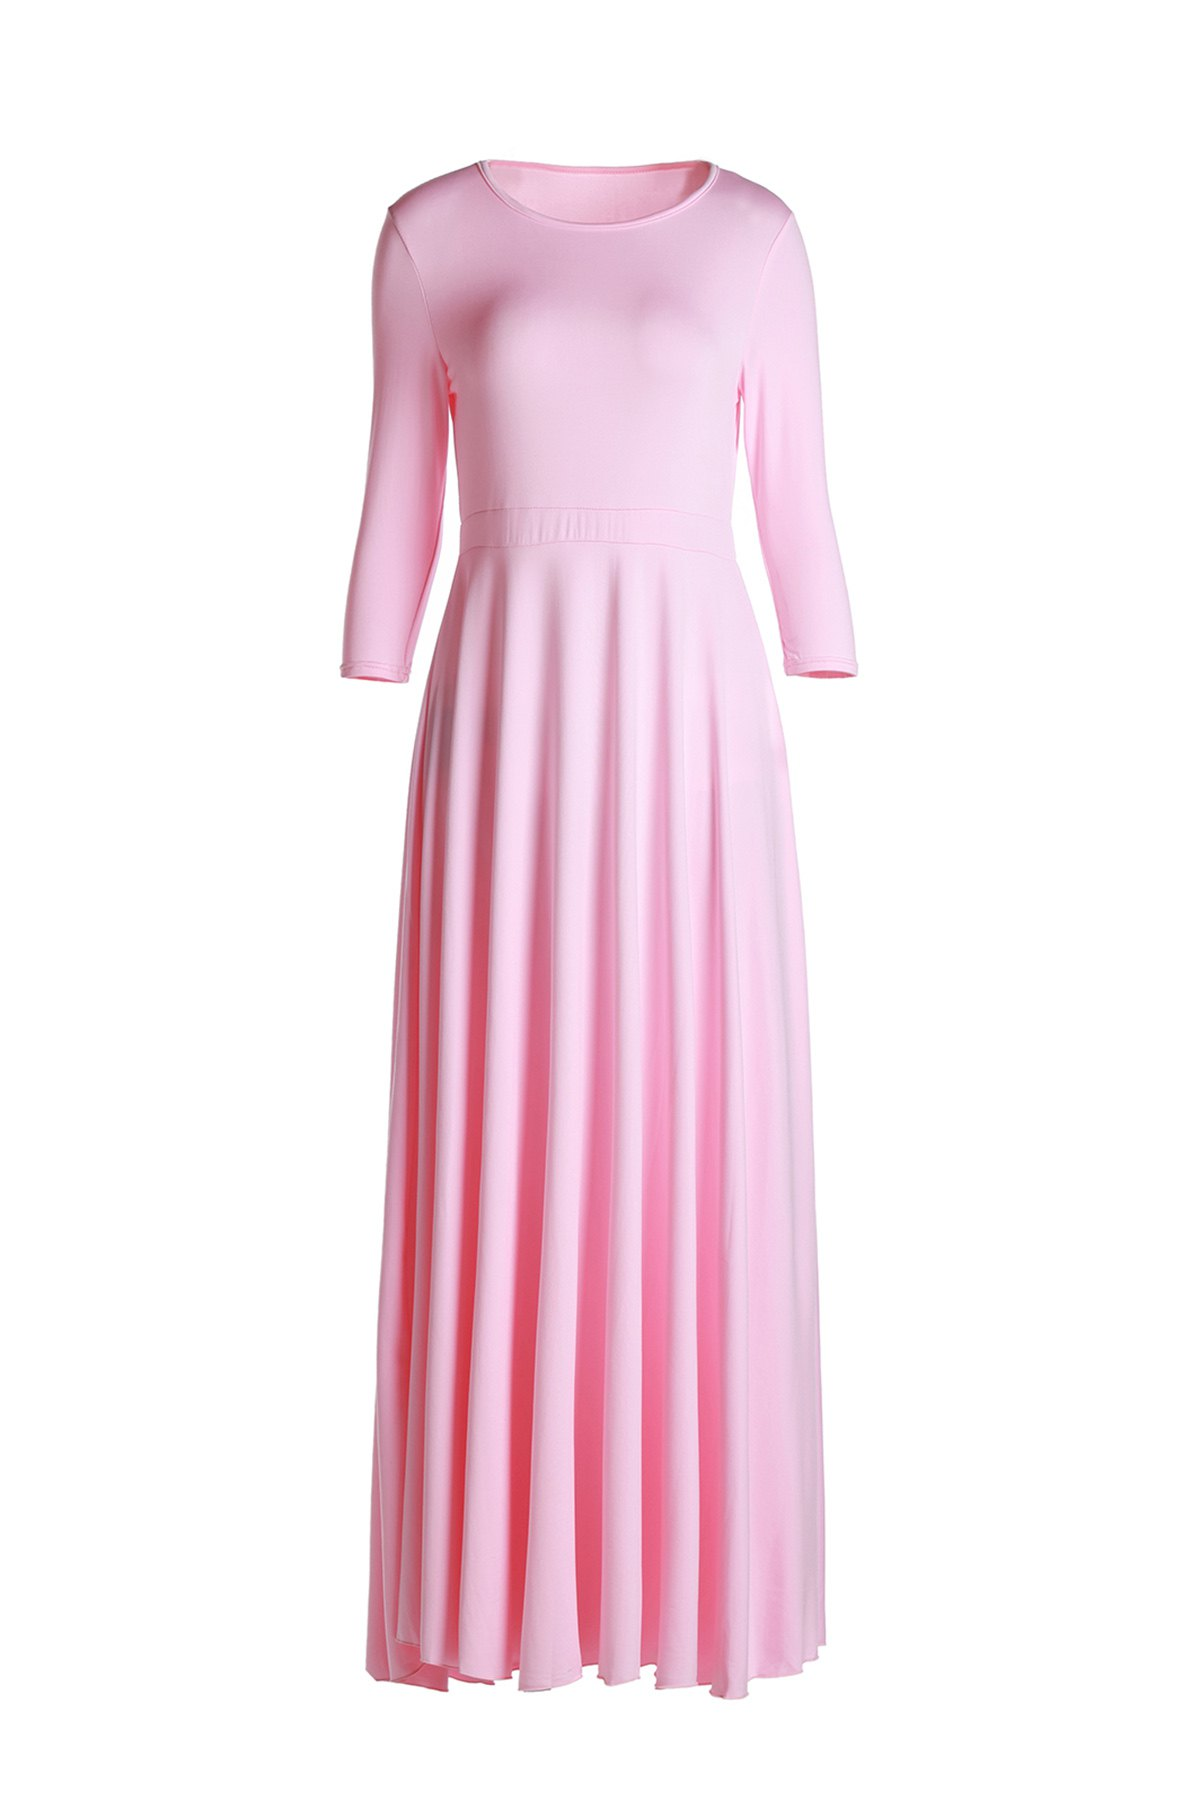 Elegant Pink Round Collar 3/4 Sleeve Dress For Women - PINK L